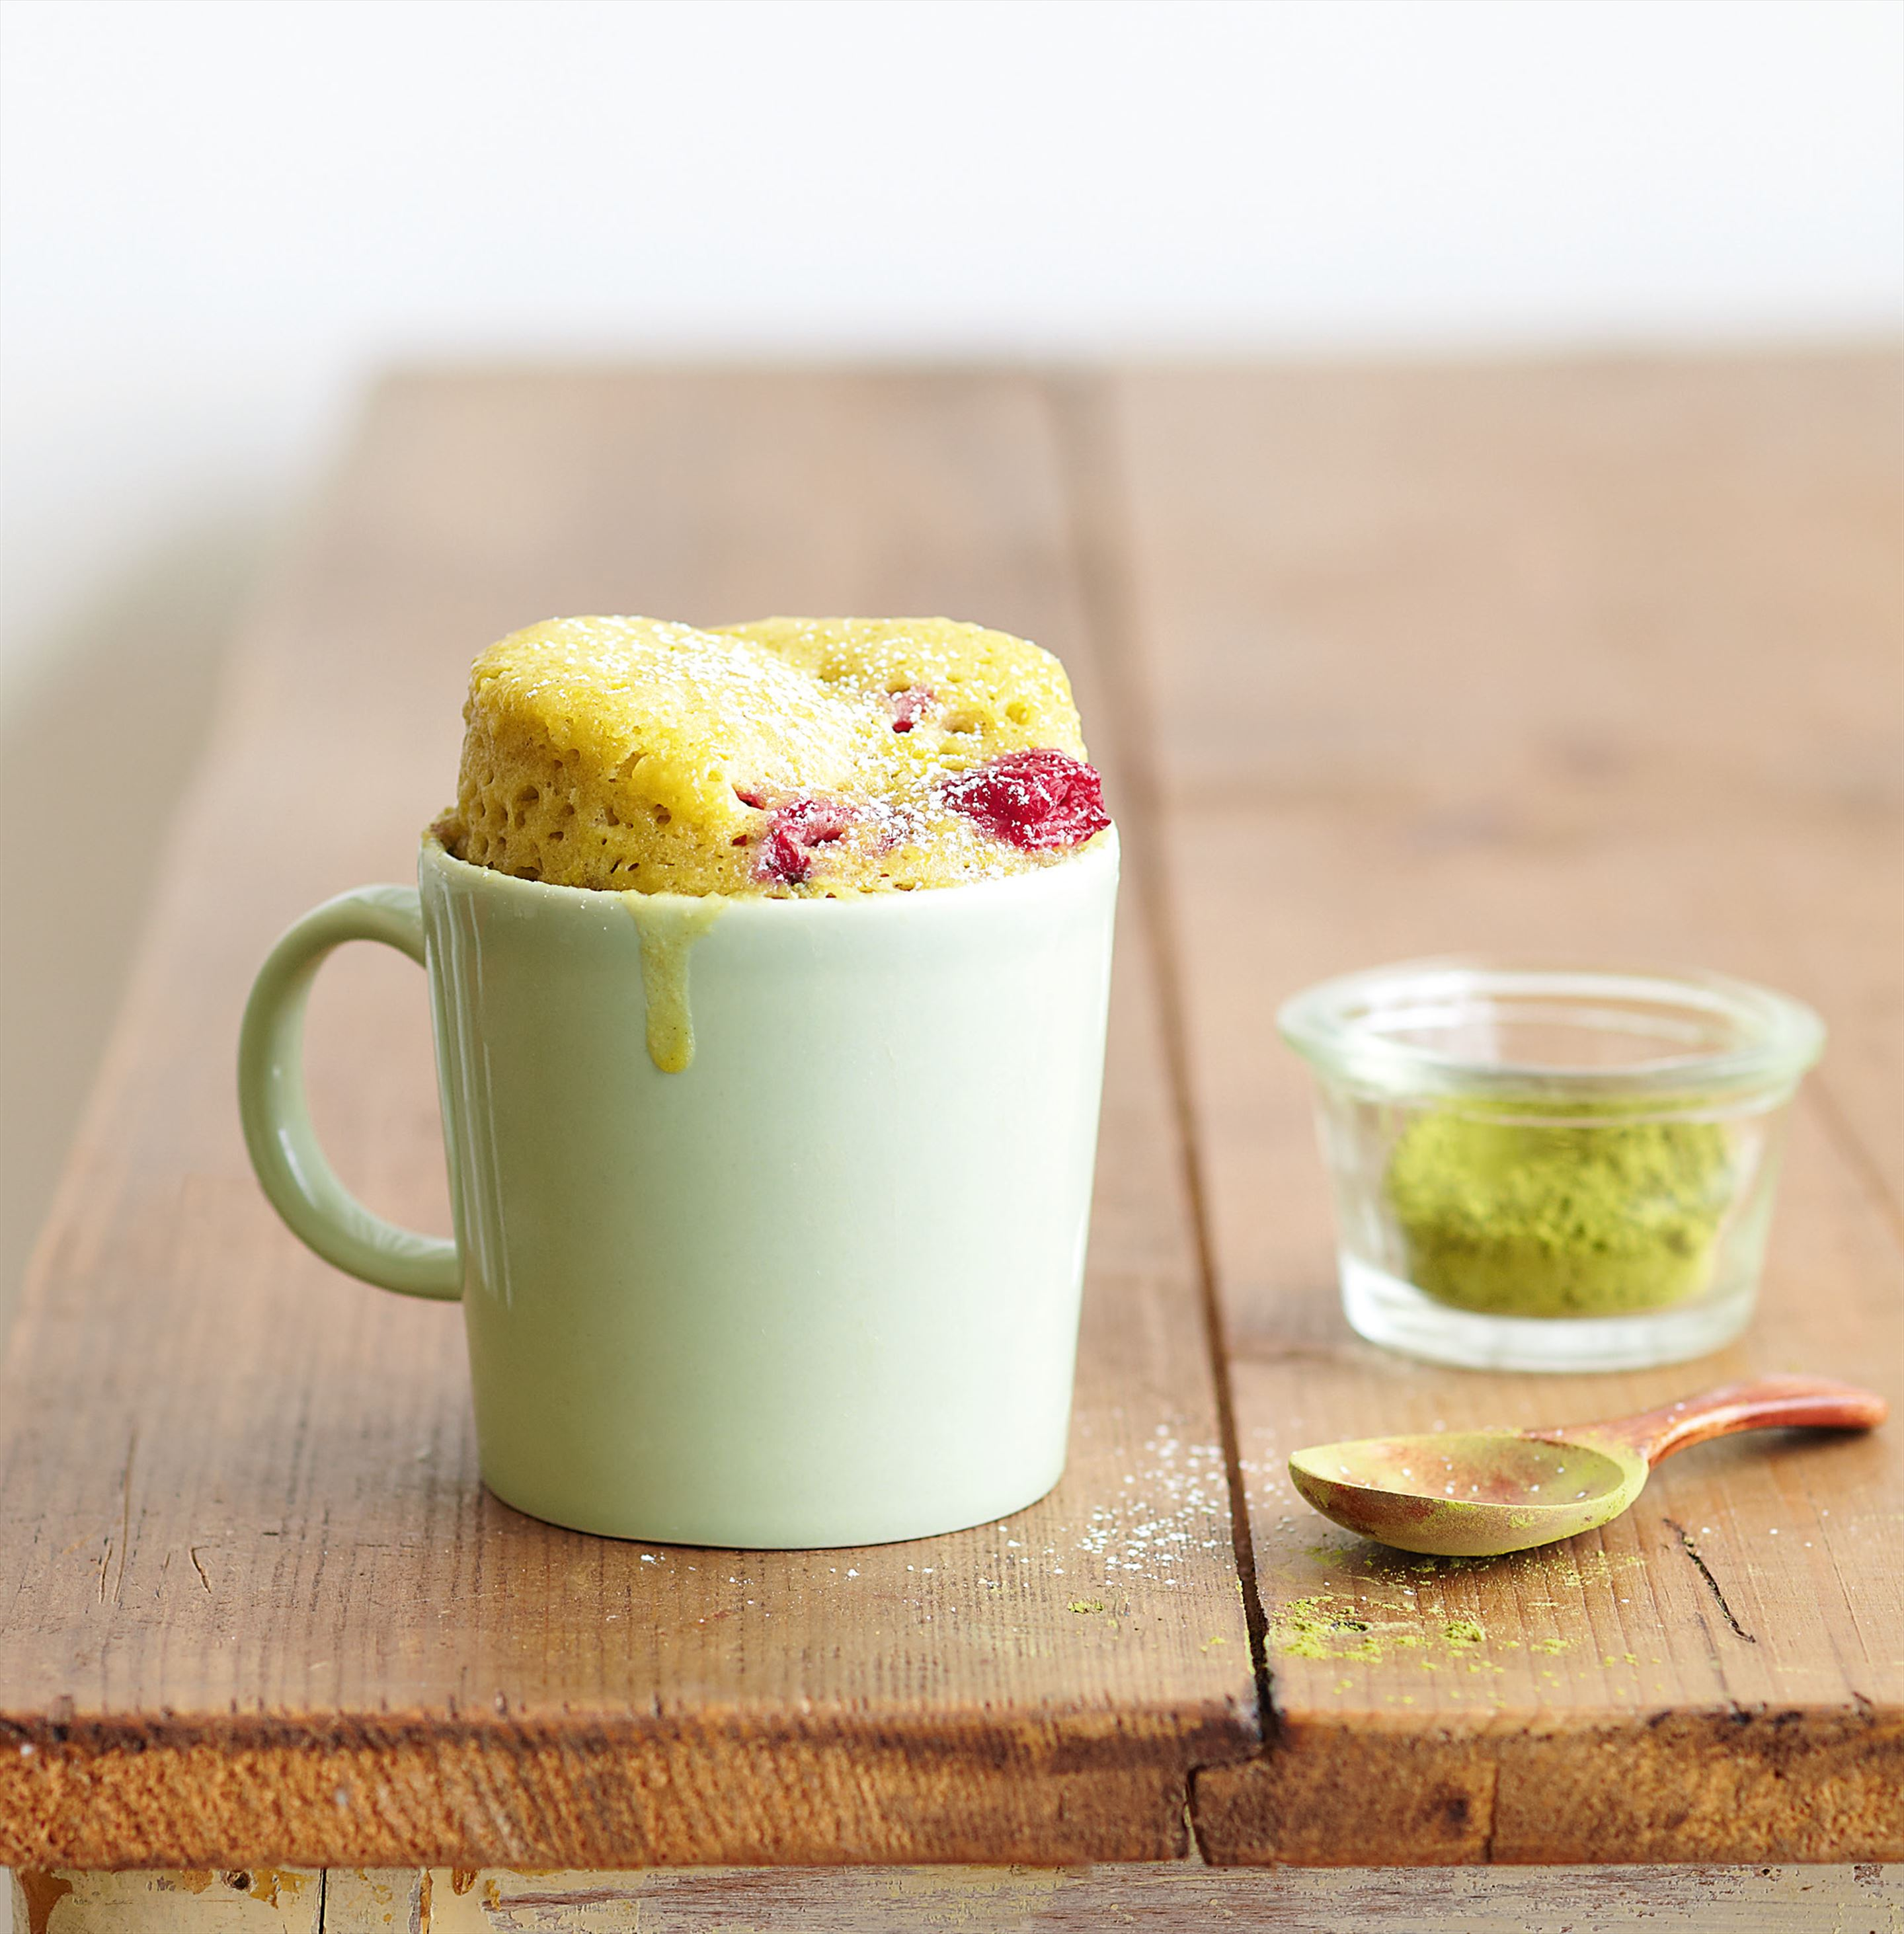 Green tea mug cake with raspberries